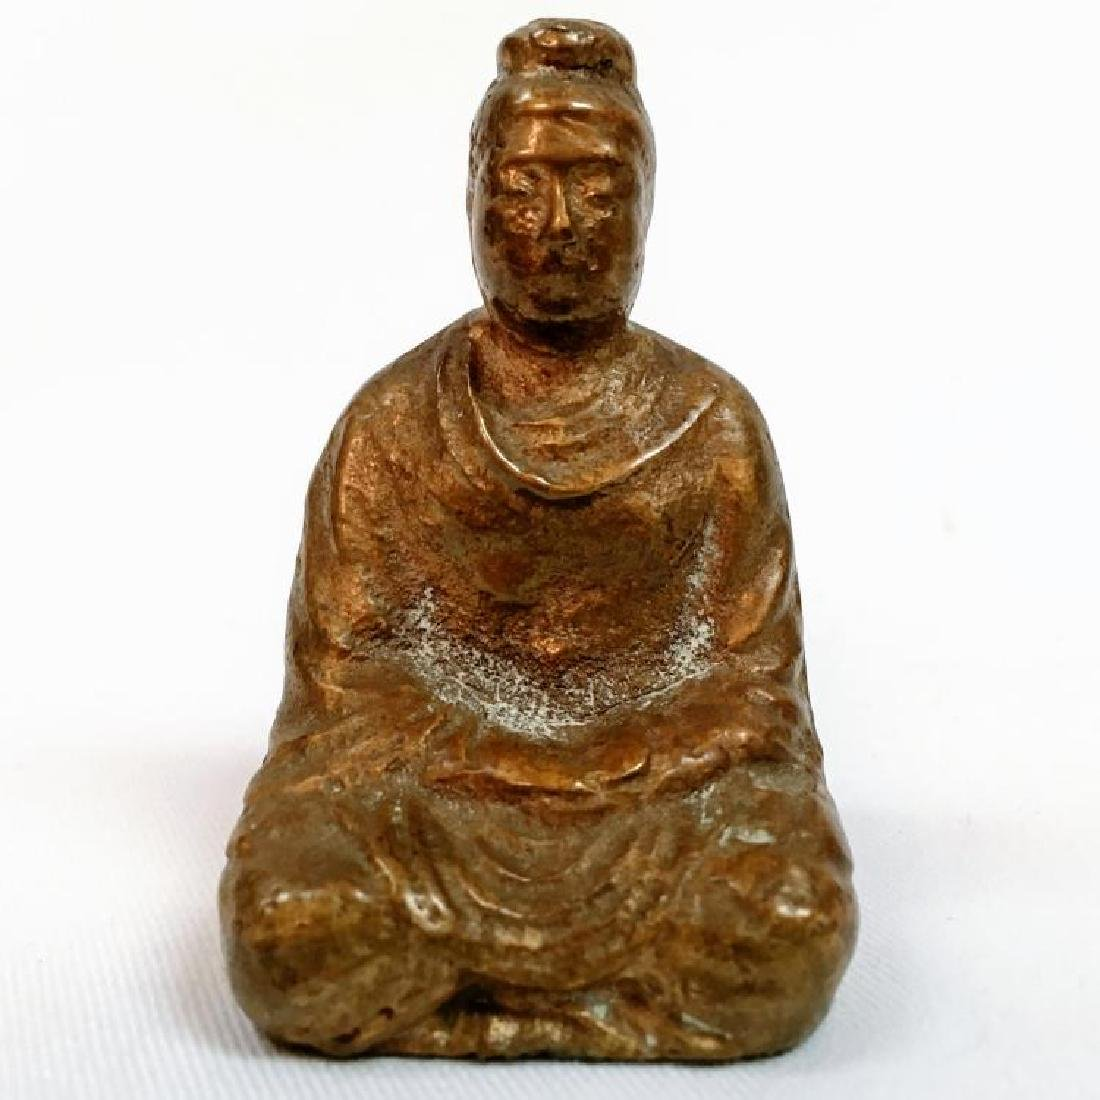 VERY OLD SMALL GILT-BRONZE SEATED FIGURE OF BUDDHA